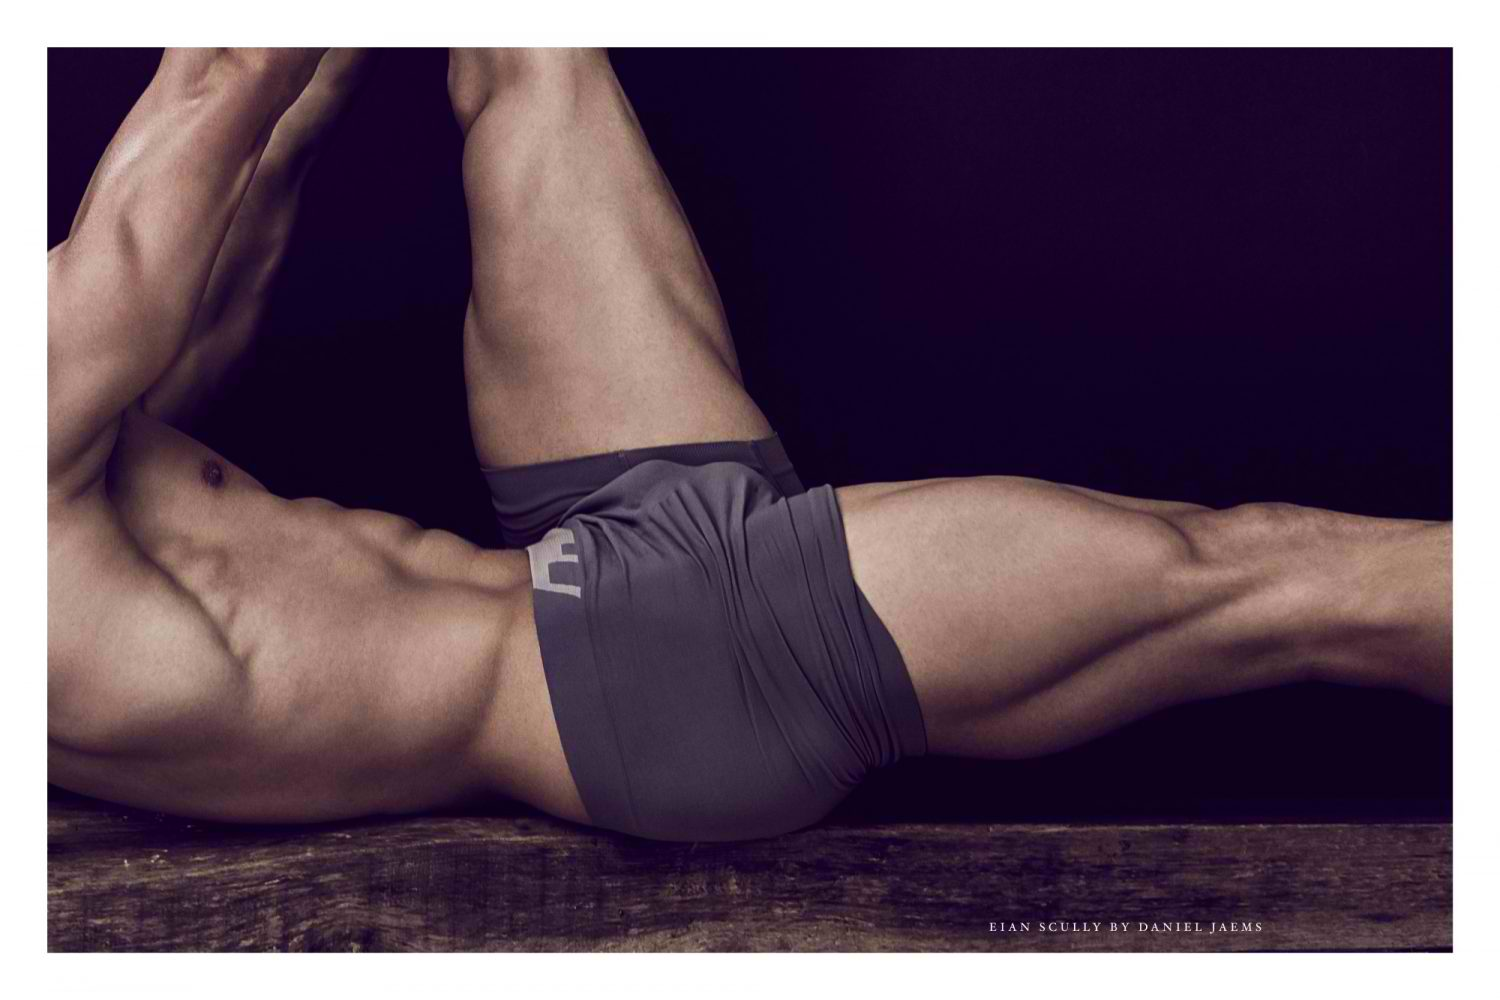 Eian-Scully-by-Daniel-Jaems-Obsession-No17-018-1500x1000